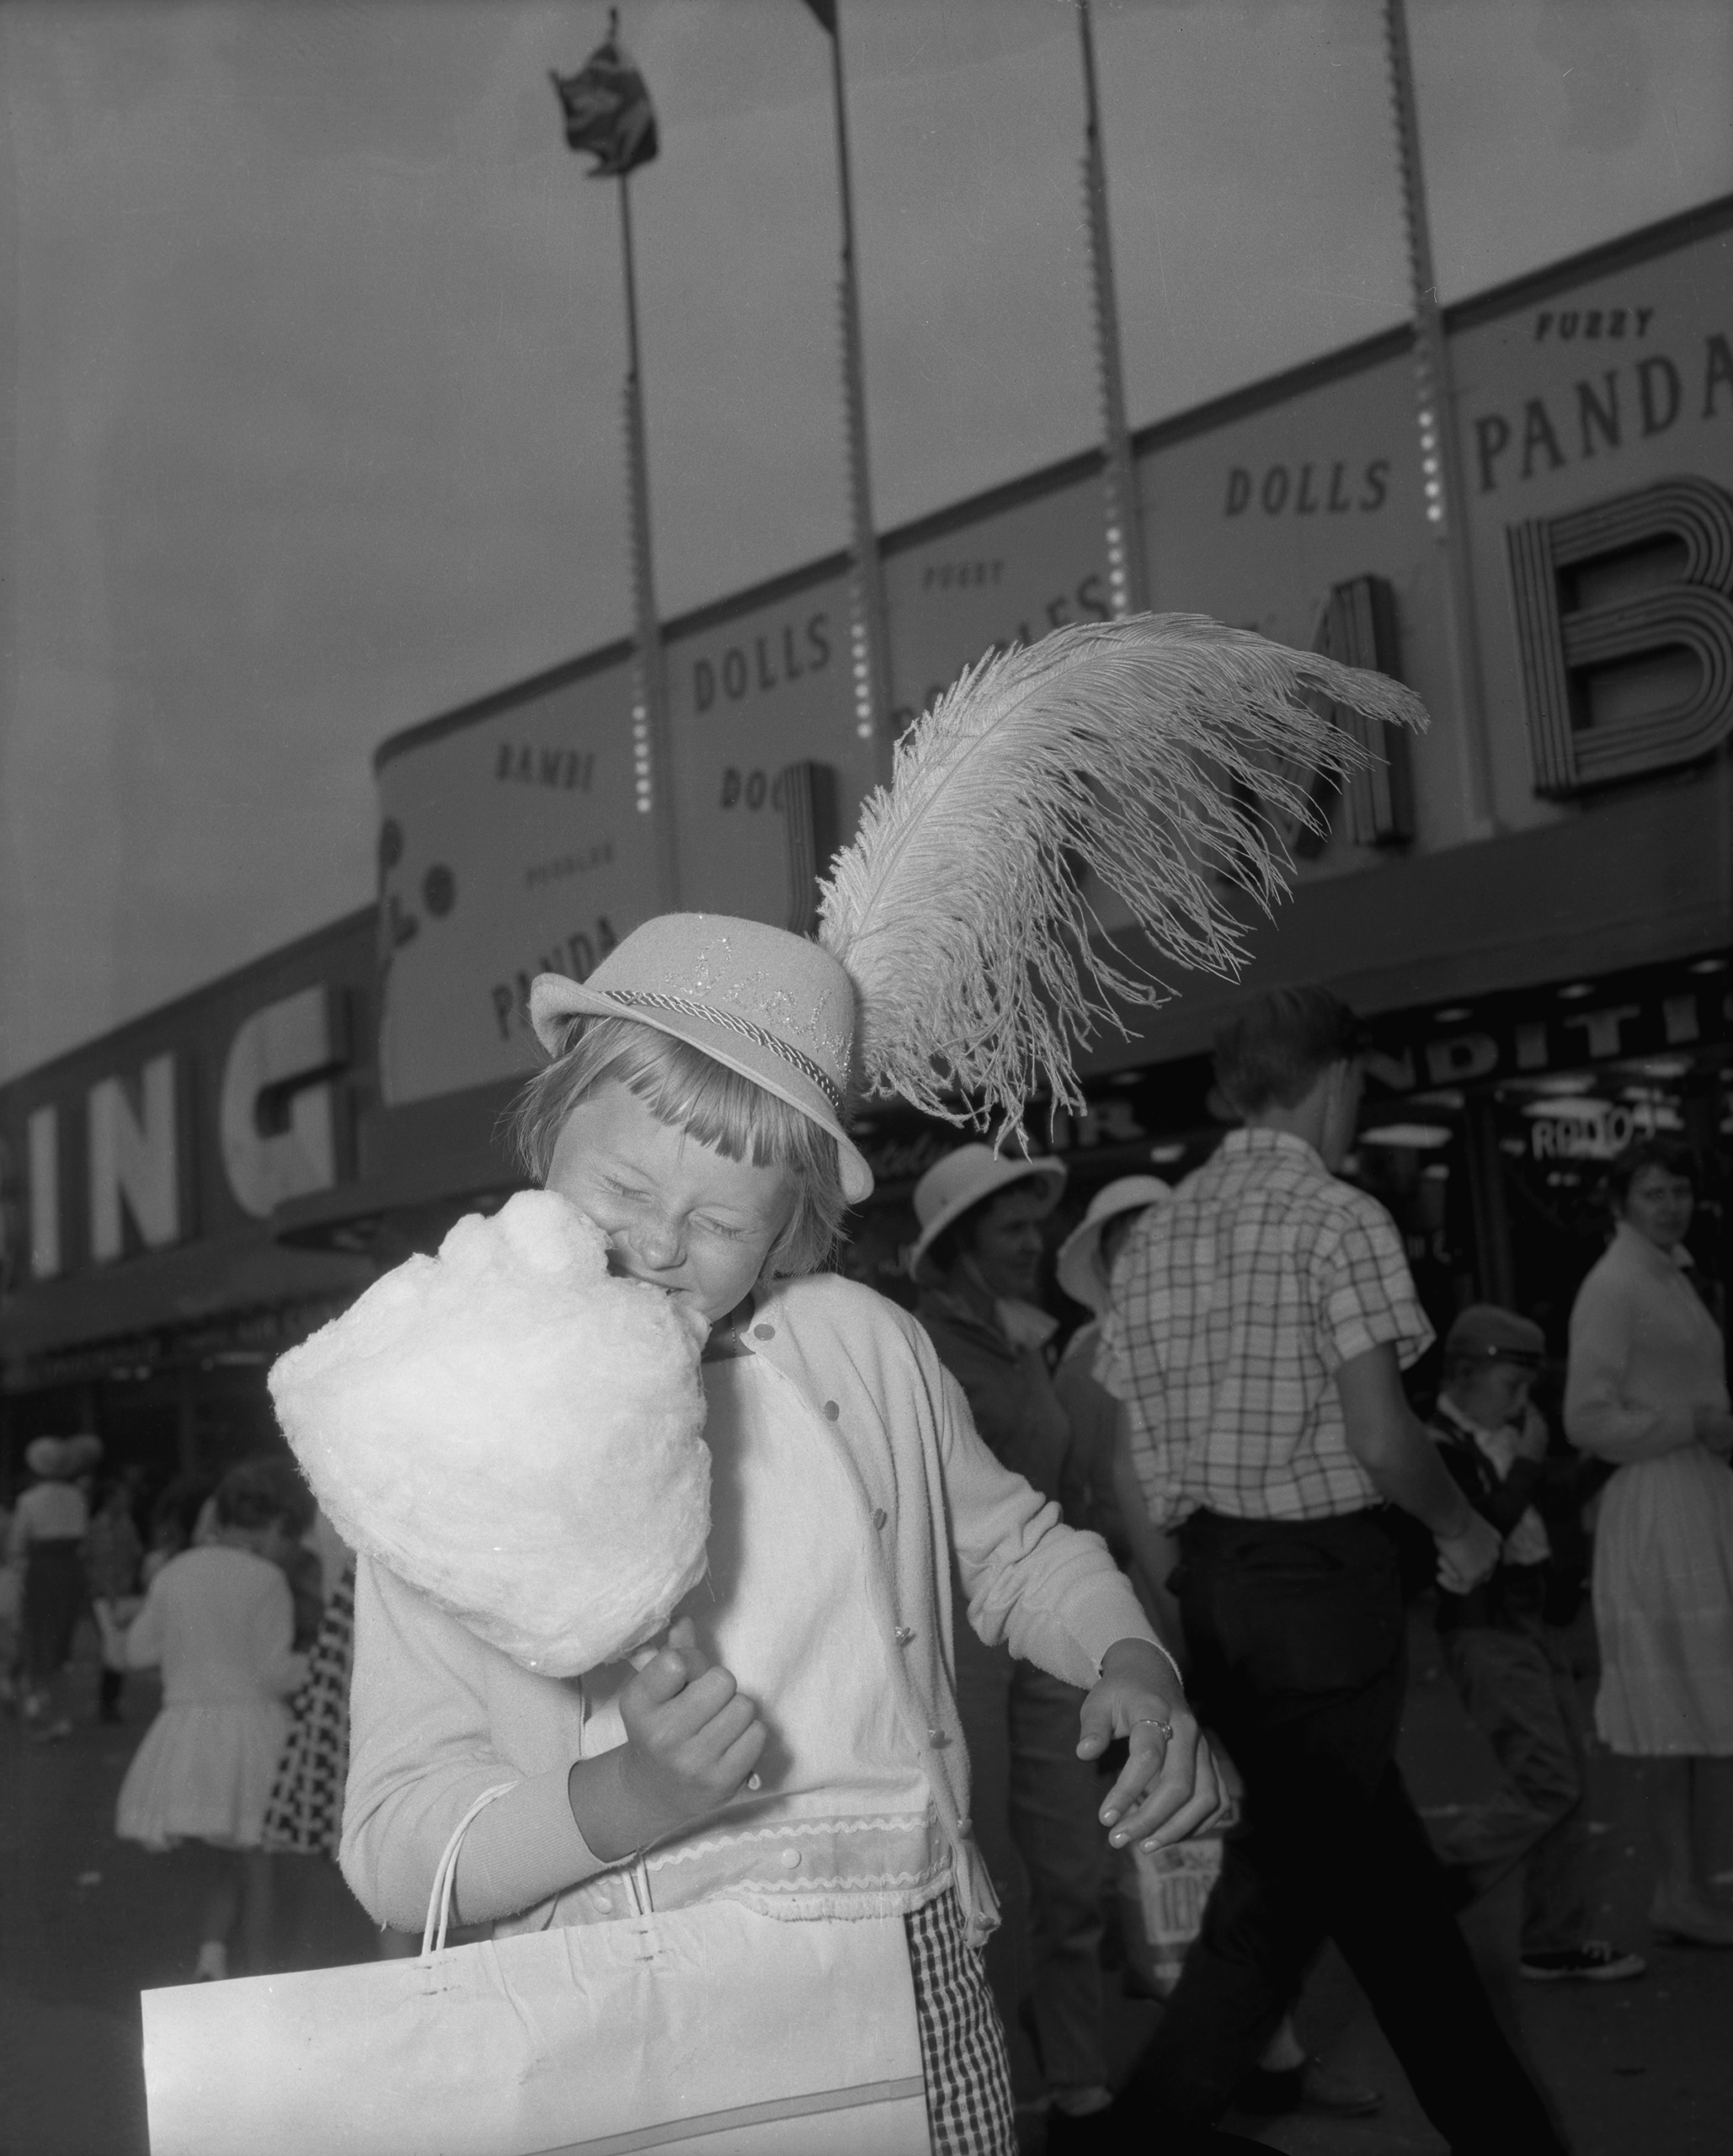 Child Eating Cotton Candy, 1961. Canadian National Exhibition Archives, MG5-F525-I4. Courtesy of the CNEA